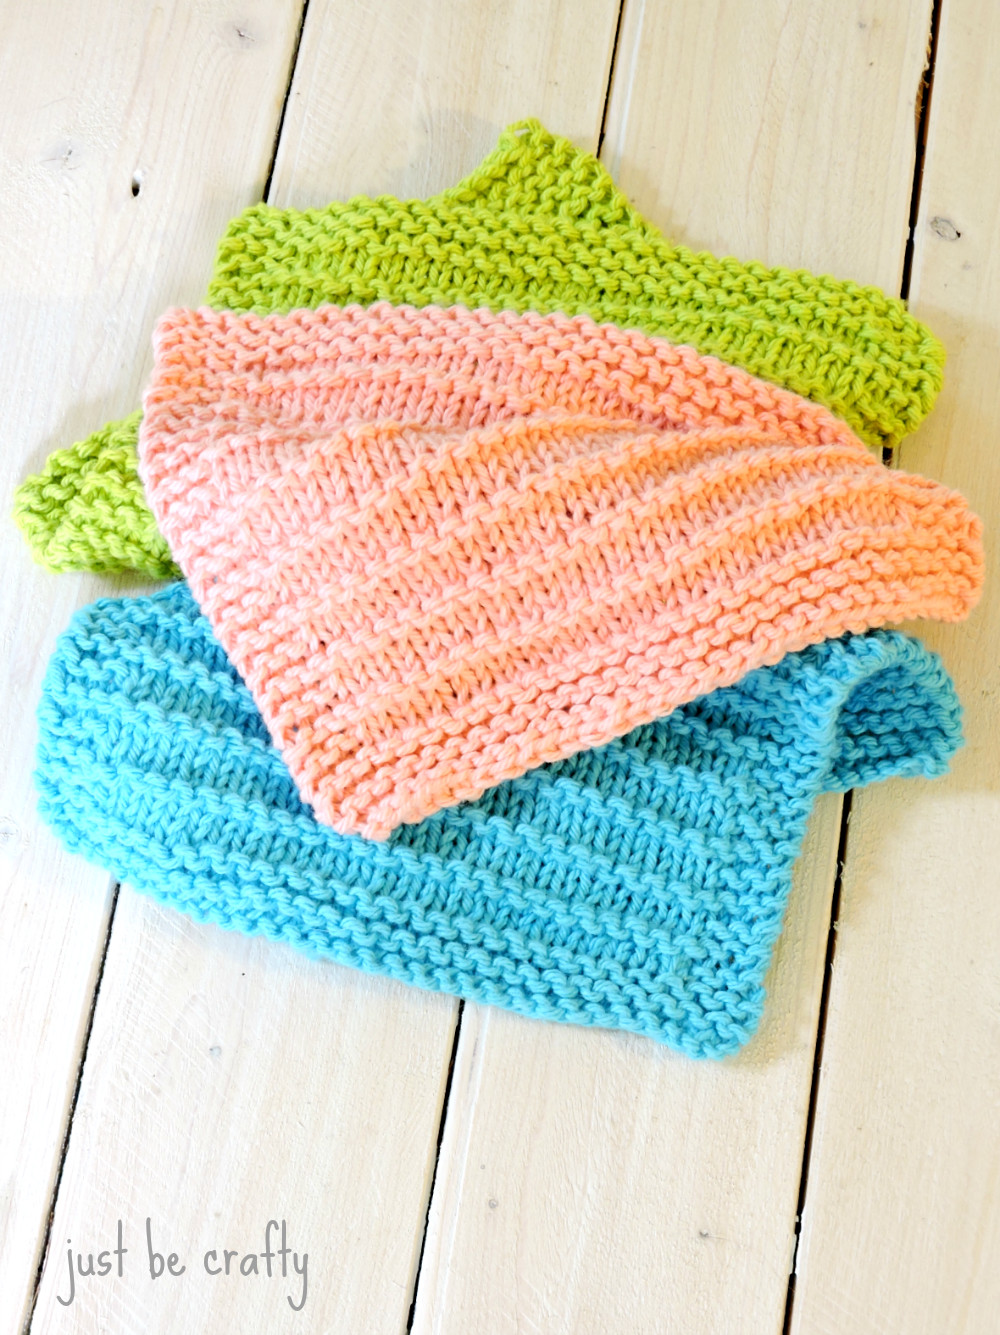 Knitting Patterns Fresh Farmhouse Kitchen Knitted Dishcloths Just Be Crafty Of Contemporary 47 Pictures Knitting Patterns